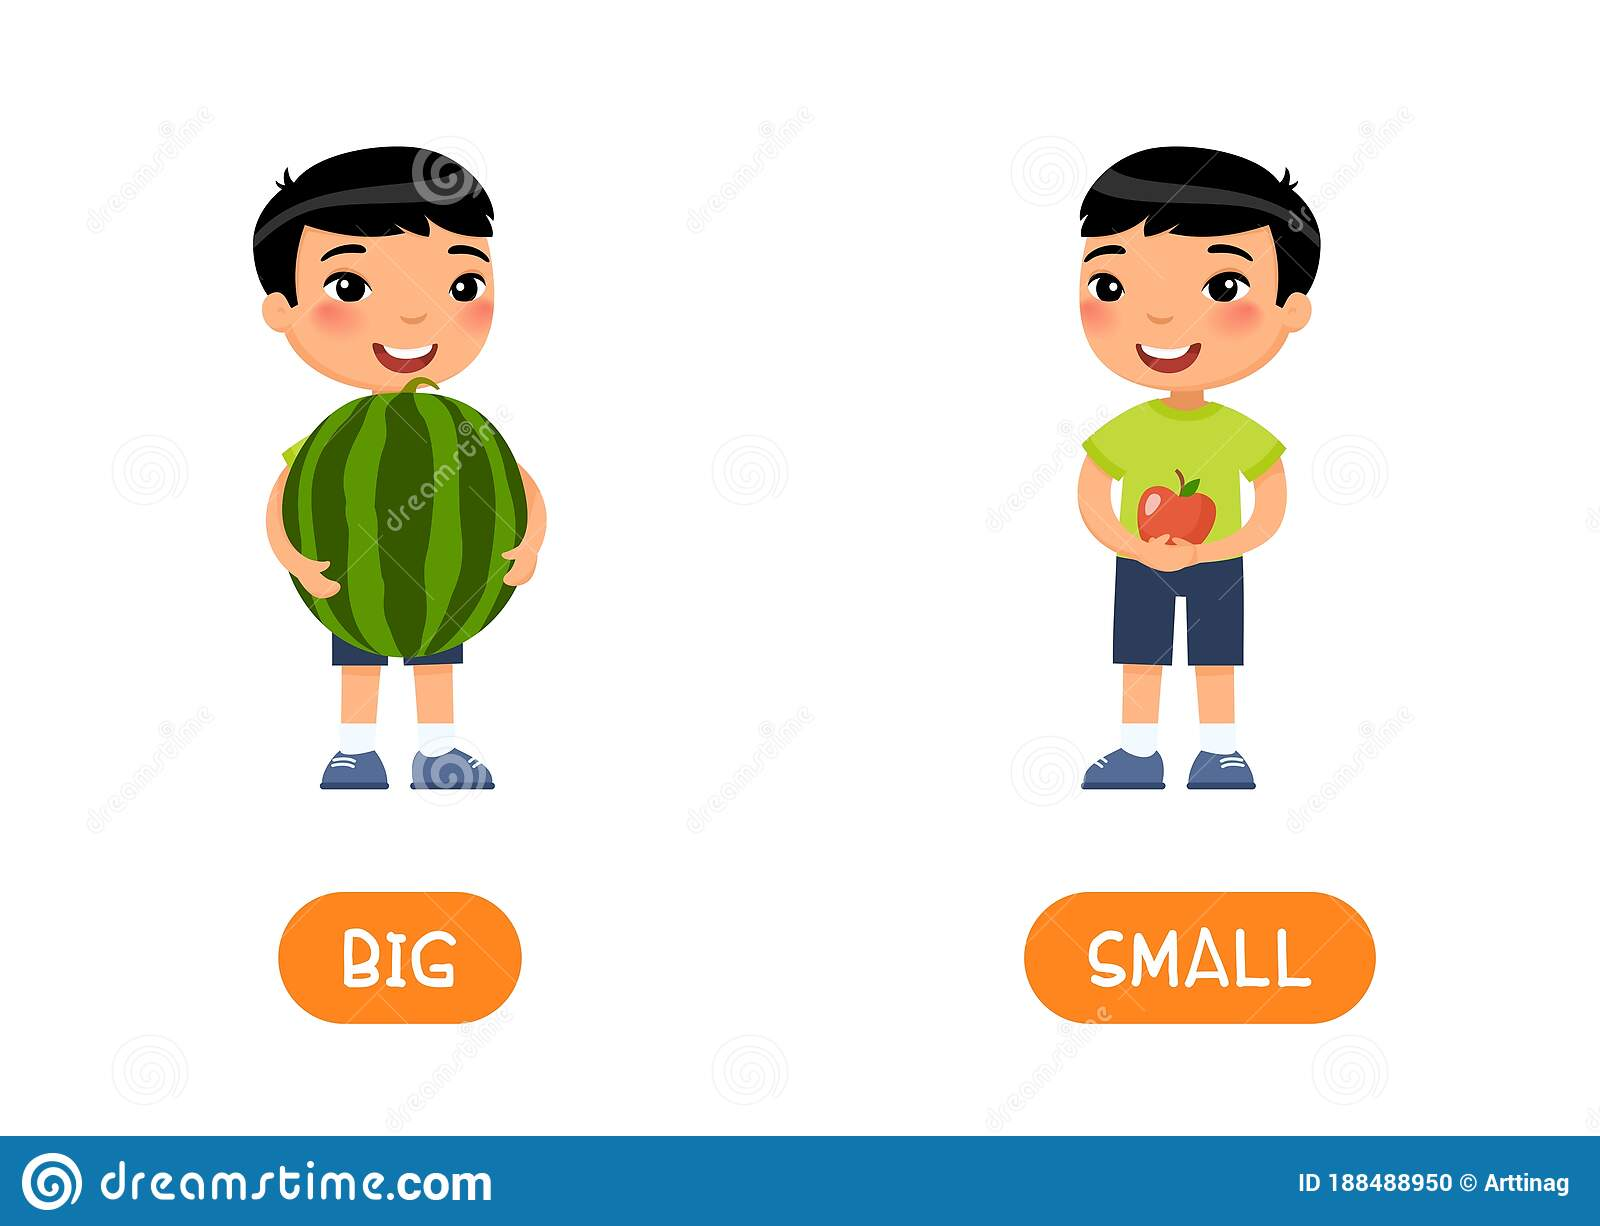 BIG And SMALL Antonyms Word Card Vector Template ...